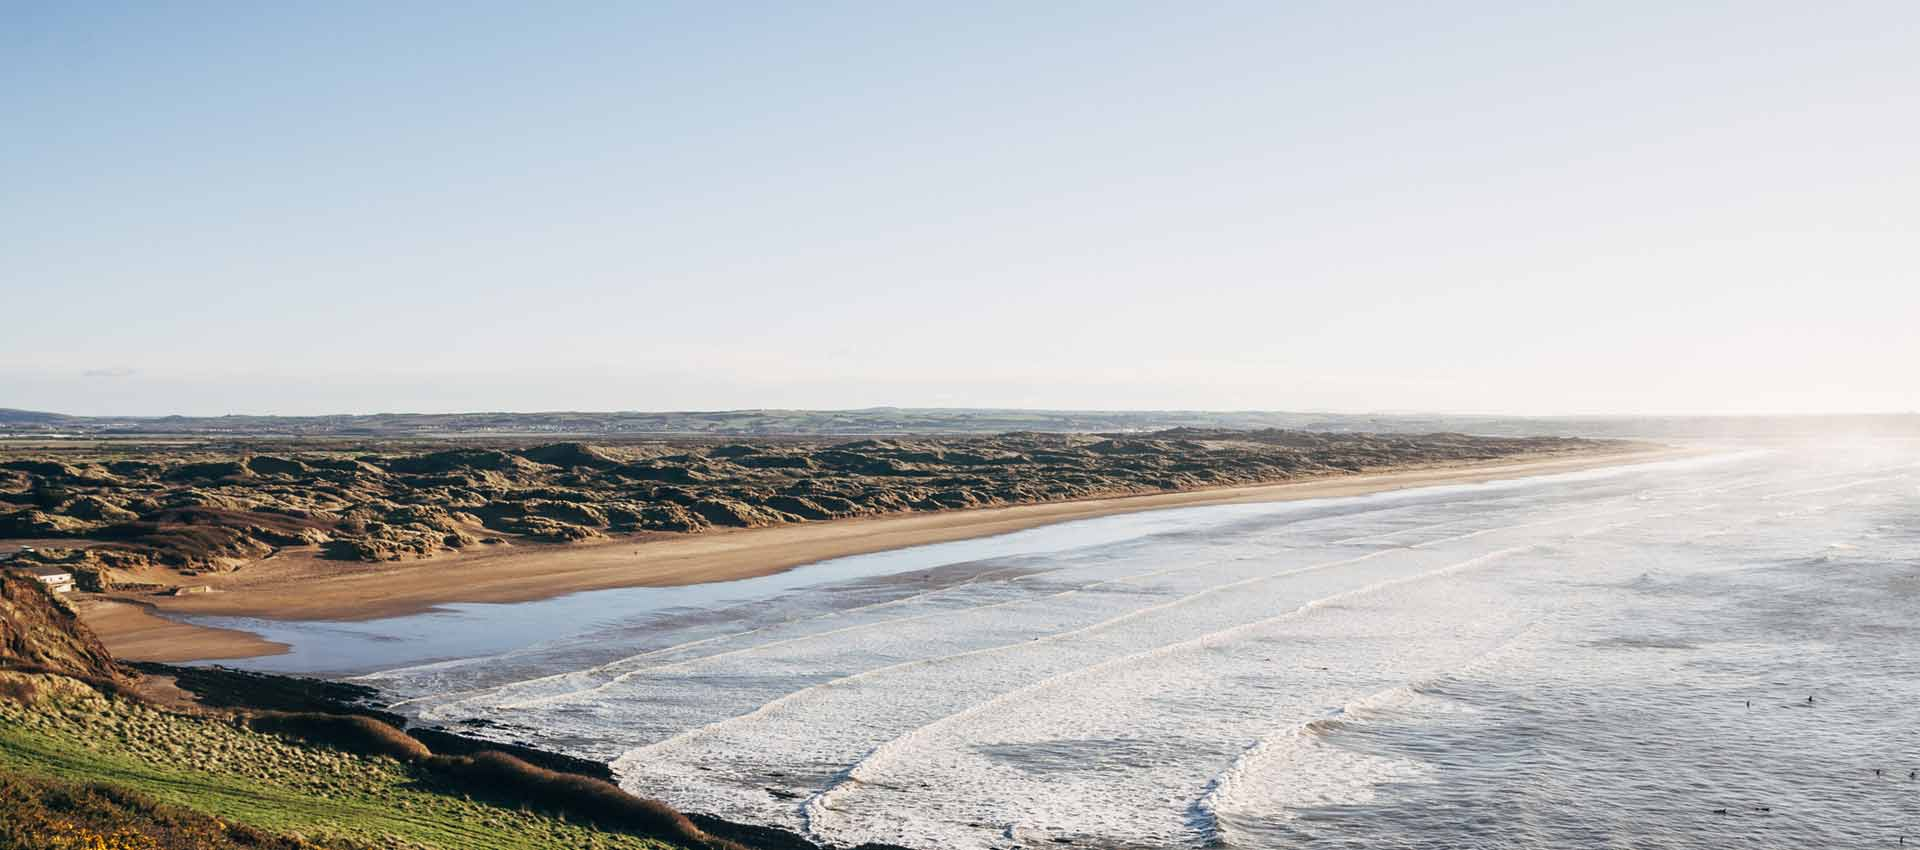 Lobb Fields, Saunton Sands beach